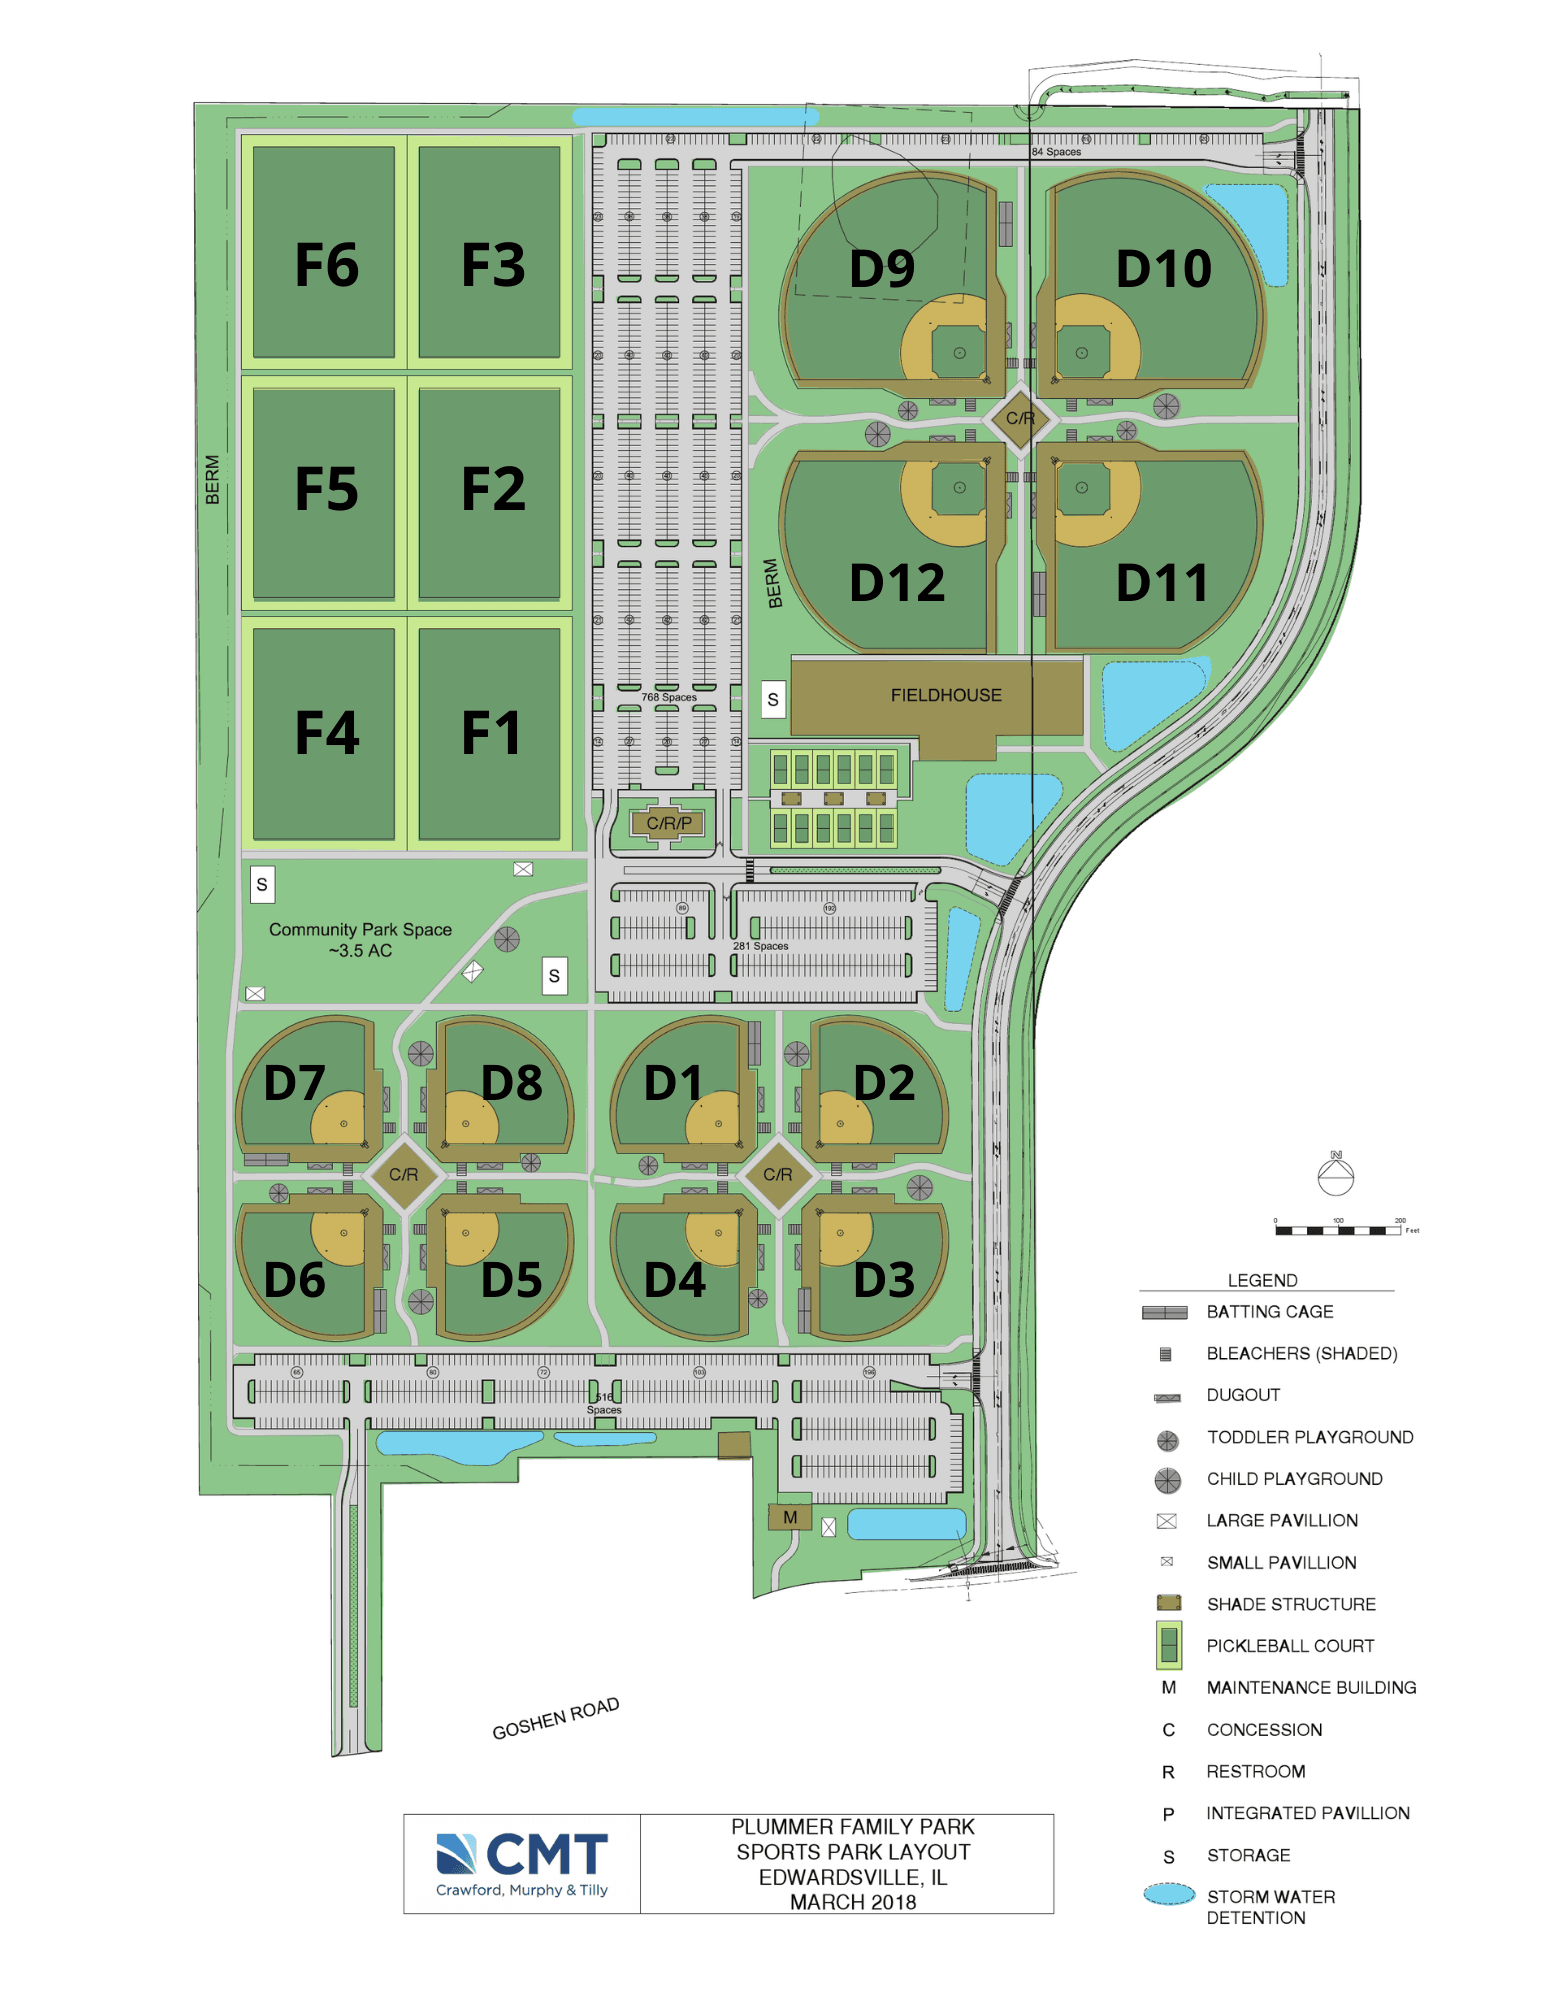 Plummer map layout field numbers